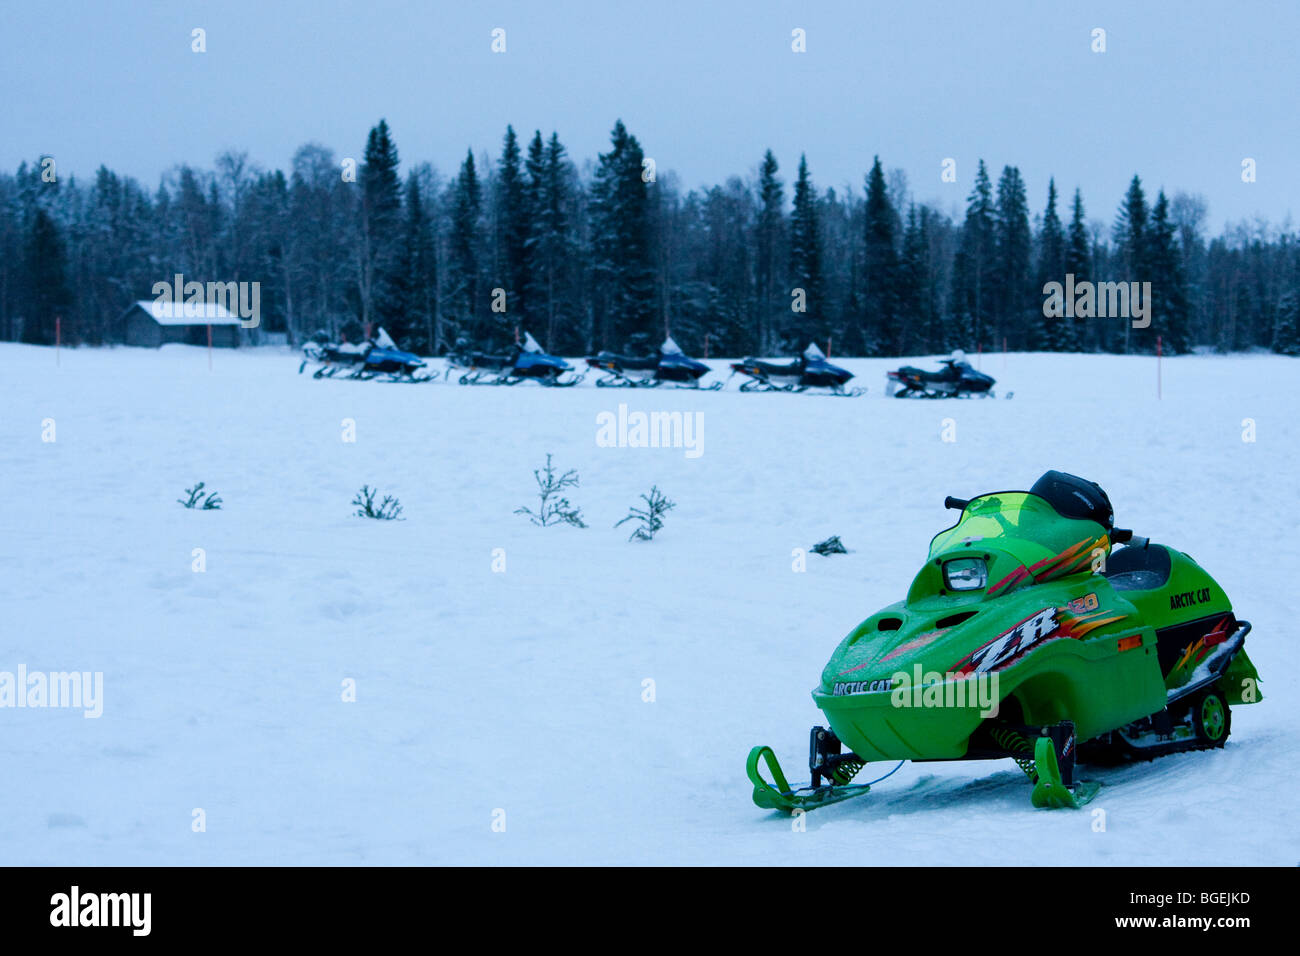 Snowmobiles in Lapland, in a snowy landscape - Stock Image